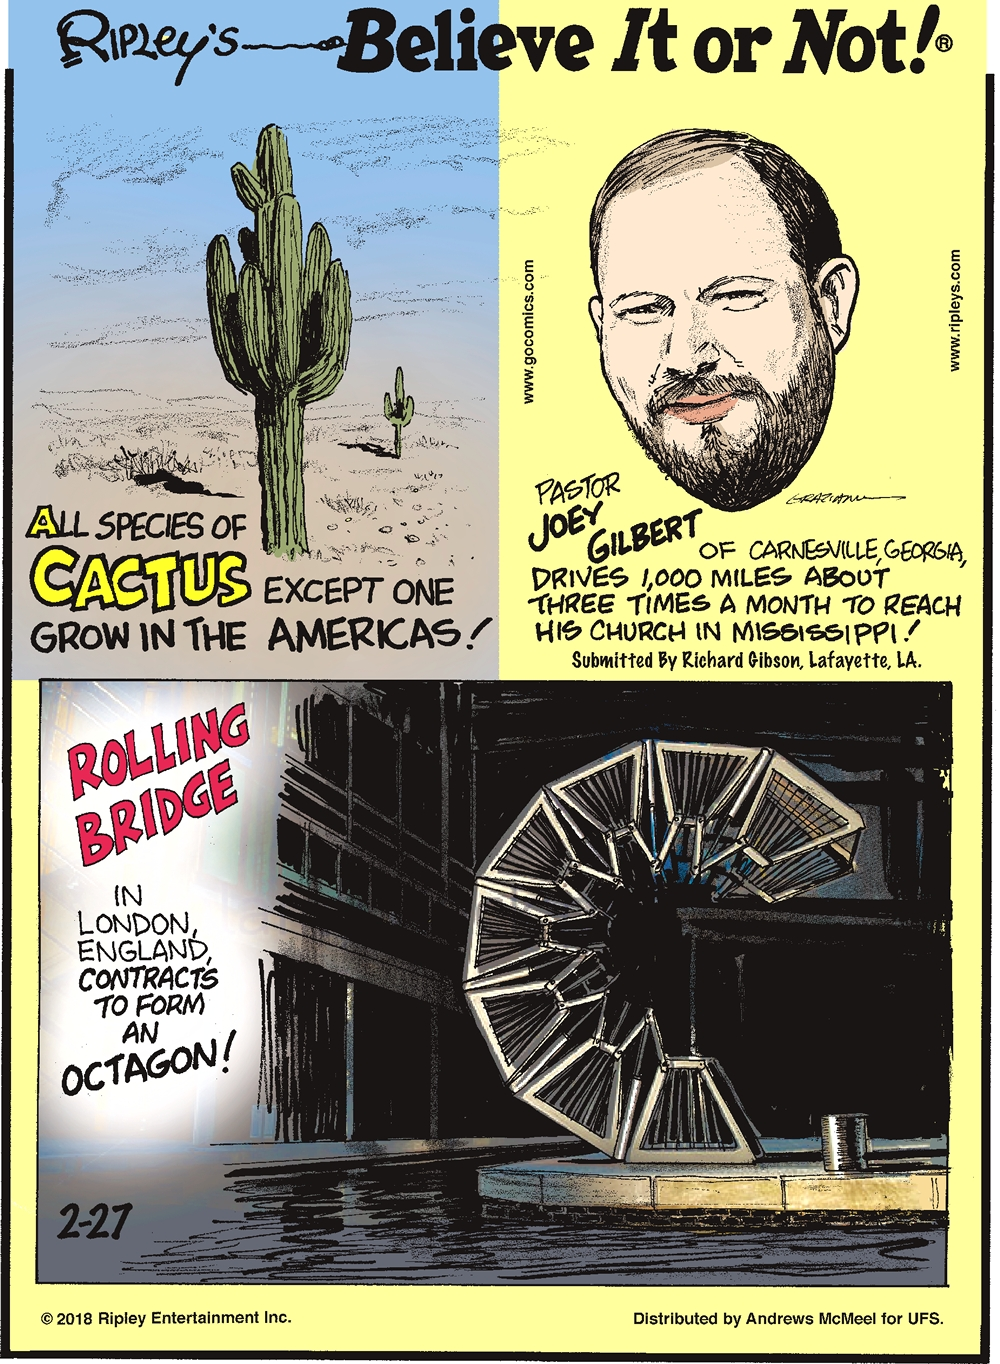 All species of cactus except one grow in the Americas!------------------- Pastor Joey Gilbert of Carnesville, Georgia, drives 1,000 miles about three times a month to reach his church in Mississippi! Submitted by Richard Gibson, Lafayette, LA.-------------------- Rolling Bridge in London, England contracts to form an octagon!